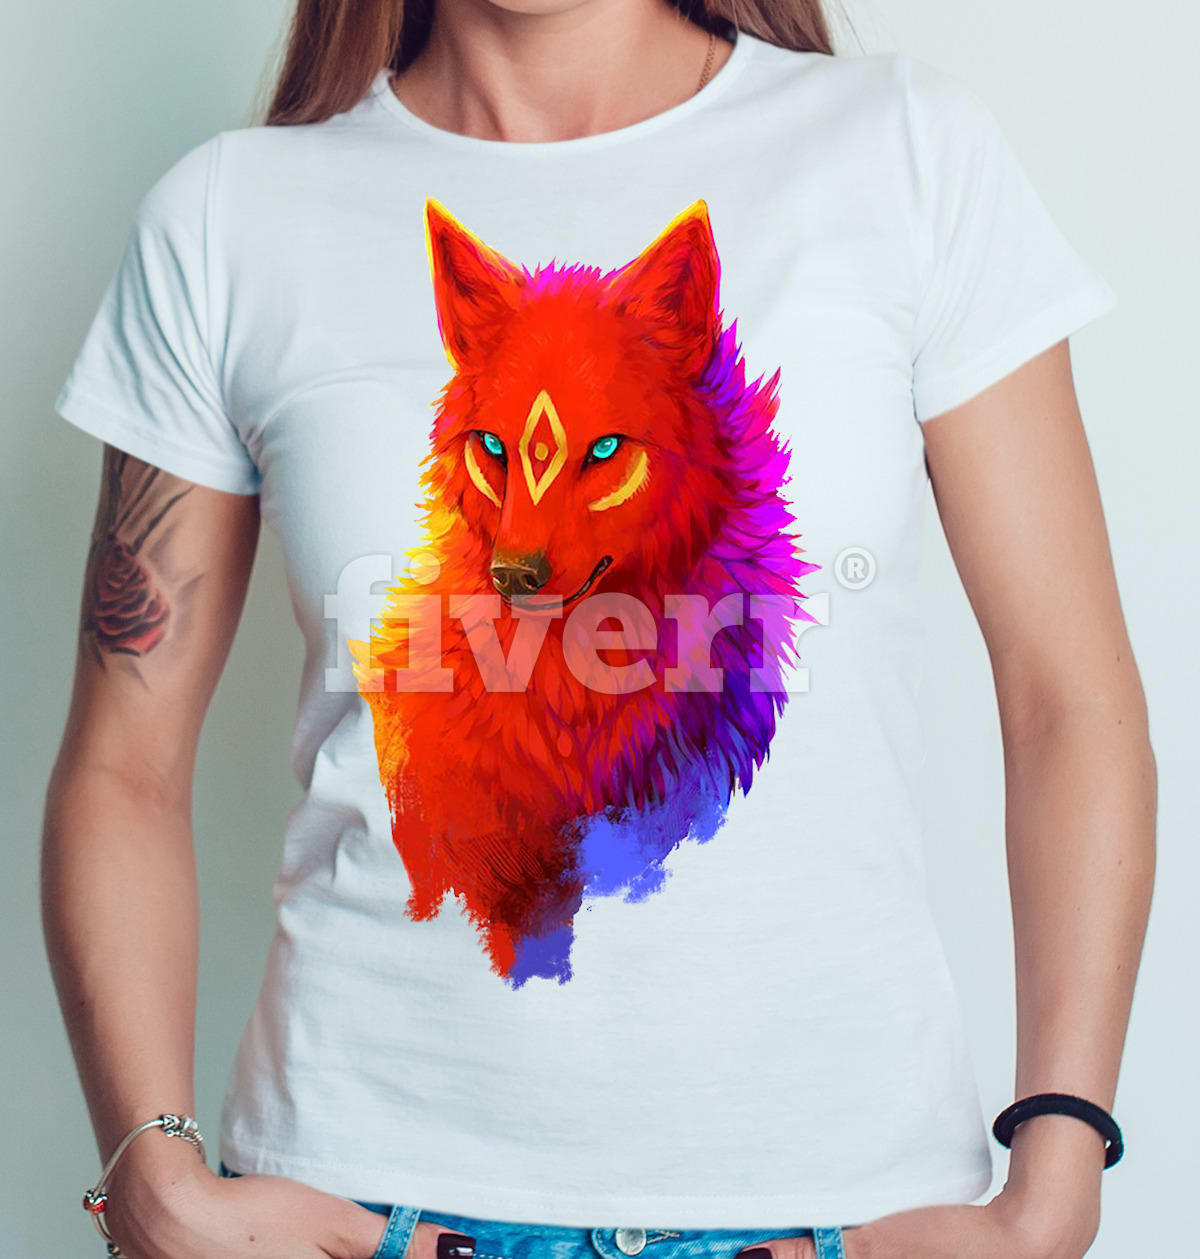 send bundle trendy tshirt designs amazon,teespring,printful shopify 24 hours